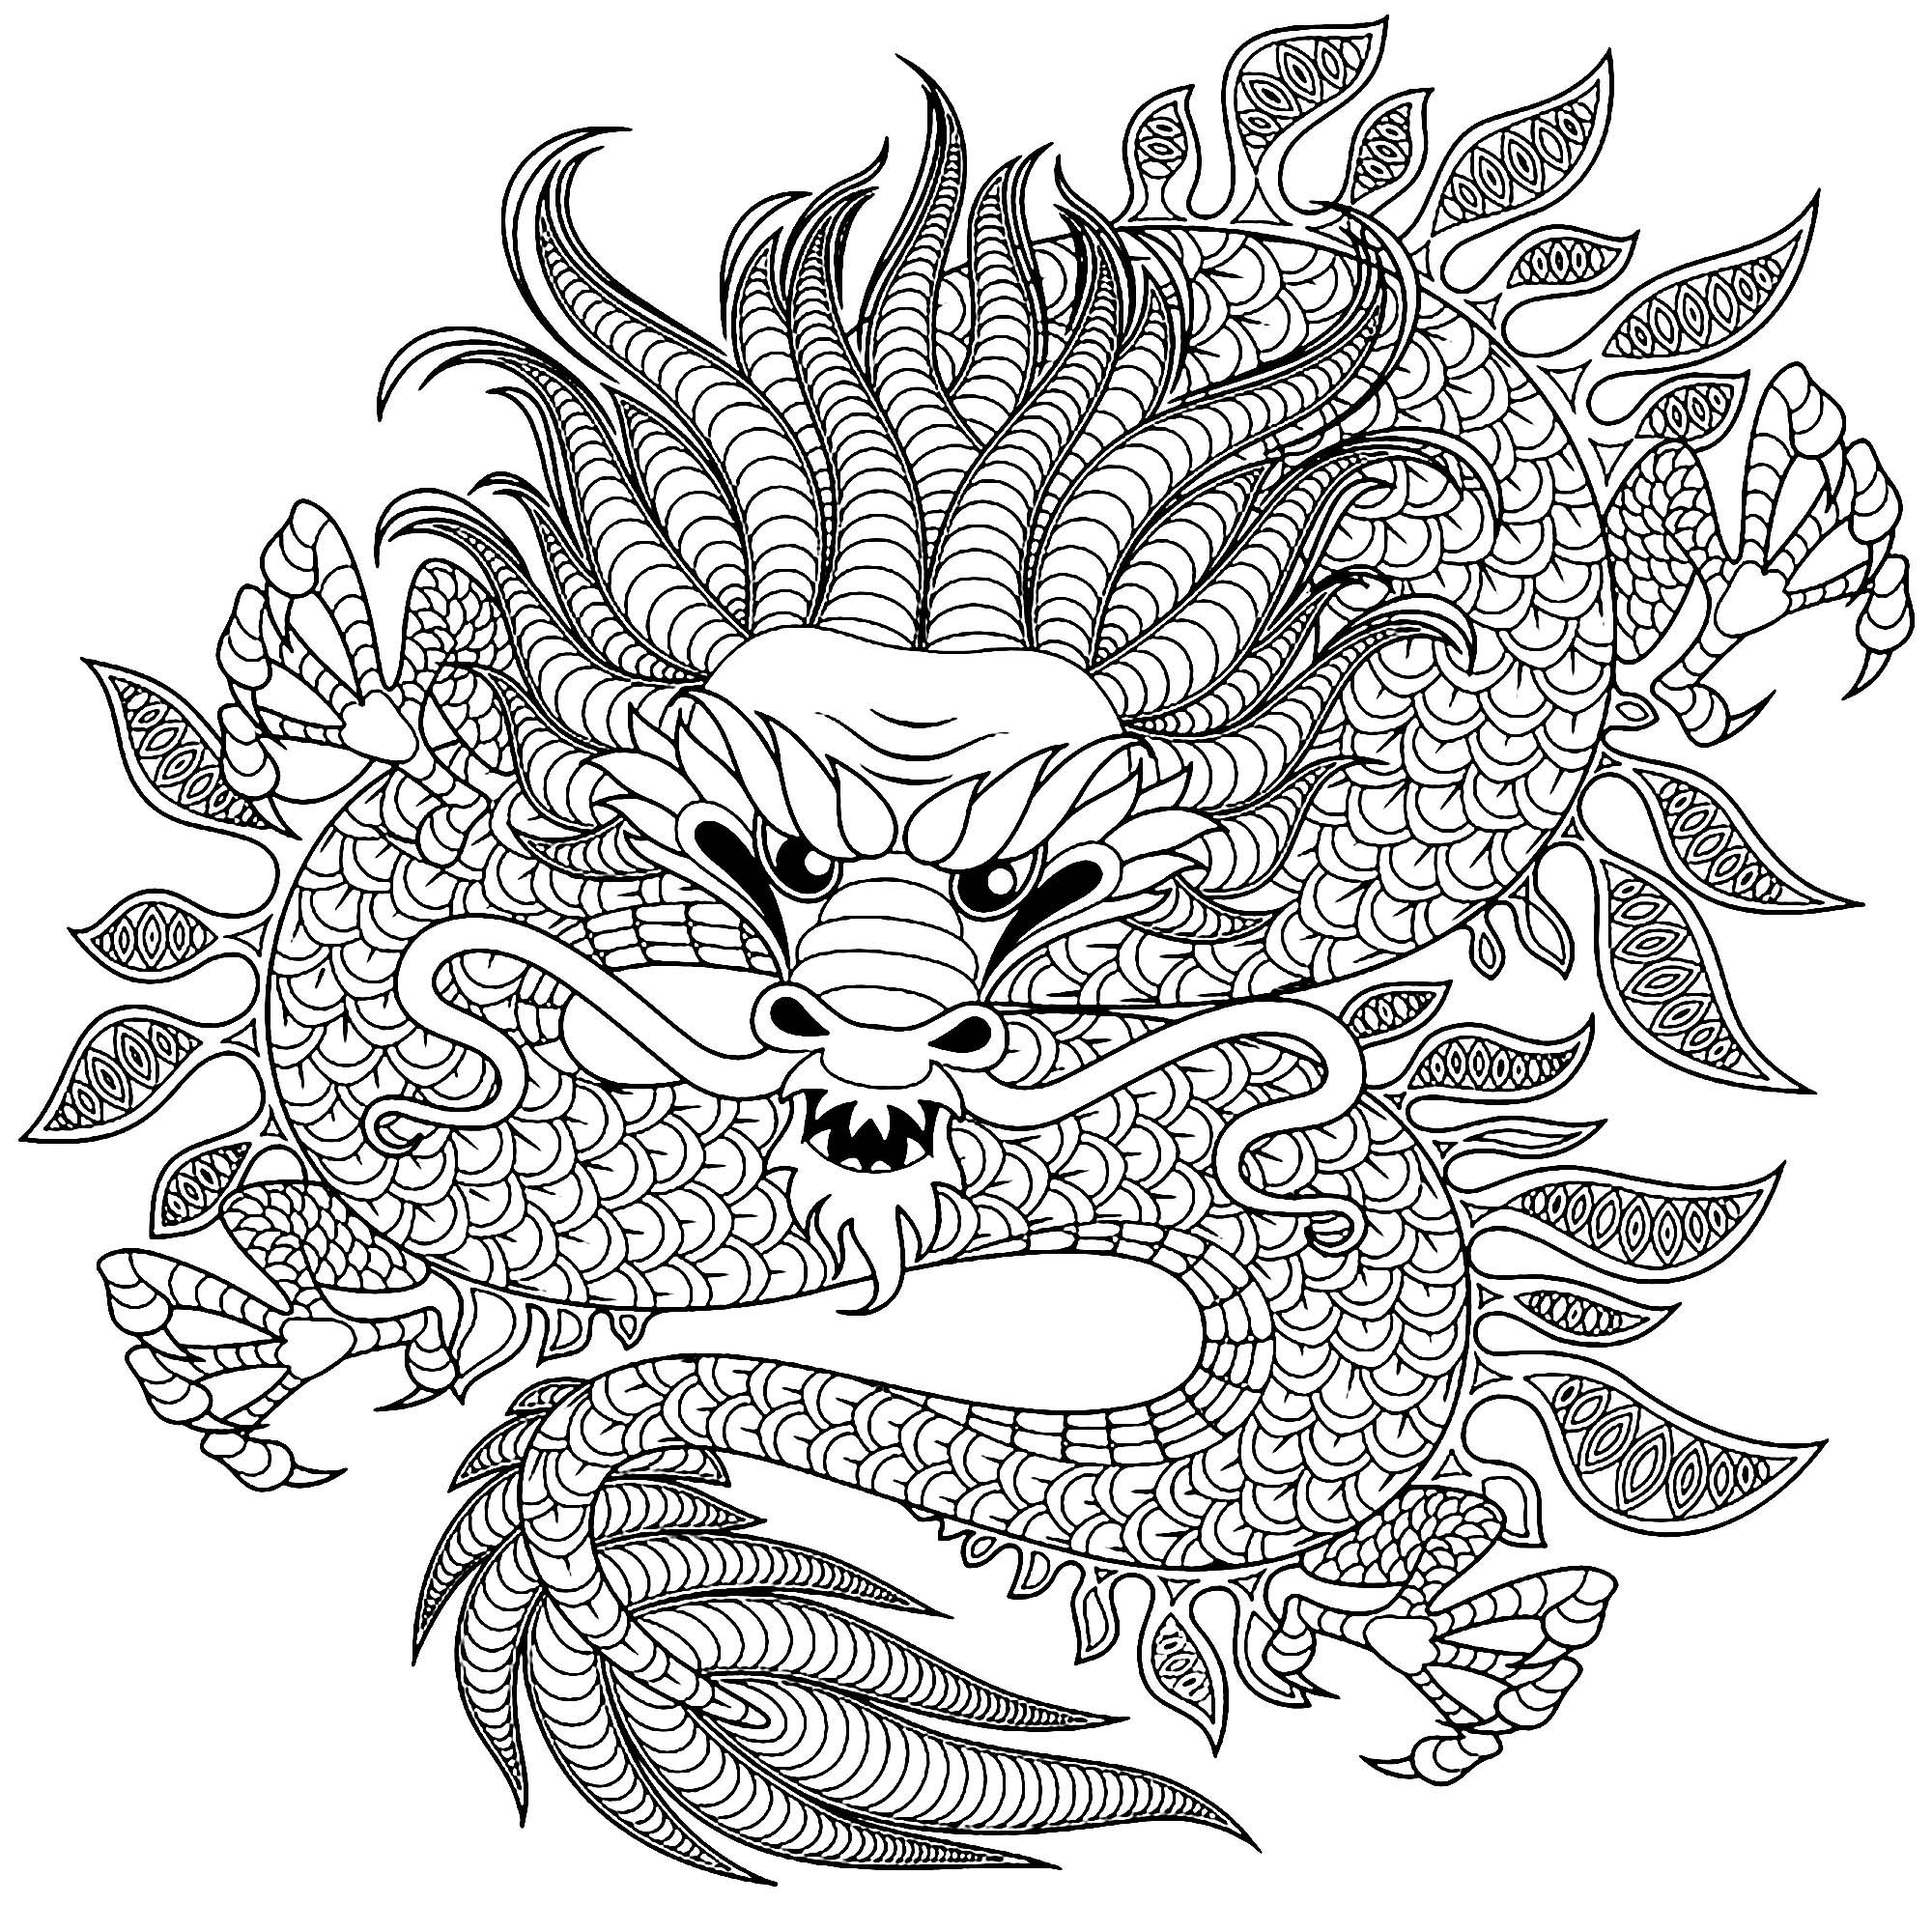 dragon coloring page chinese dragon coloring pages to download and print for free dragon coloring page